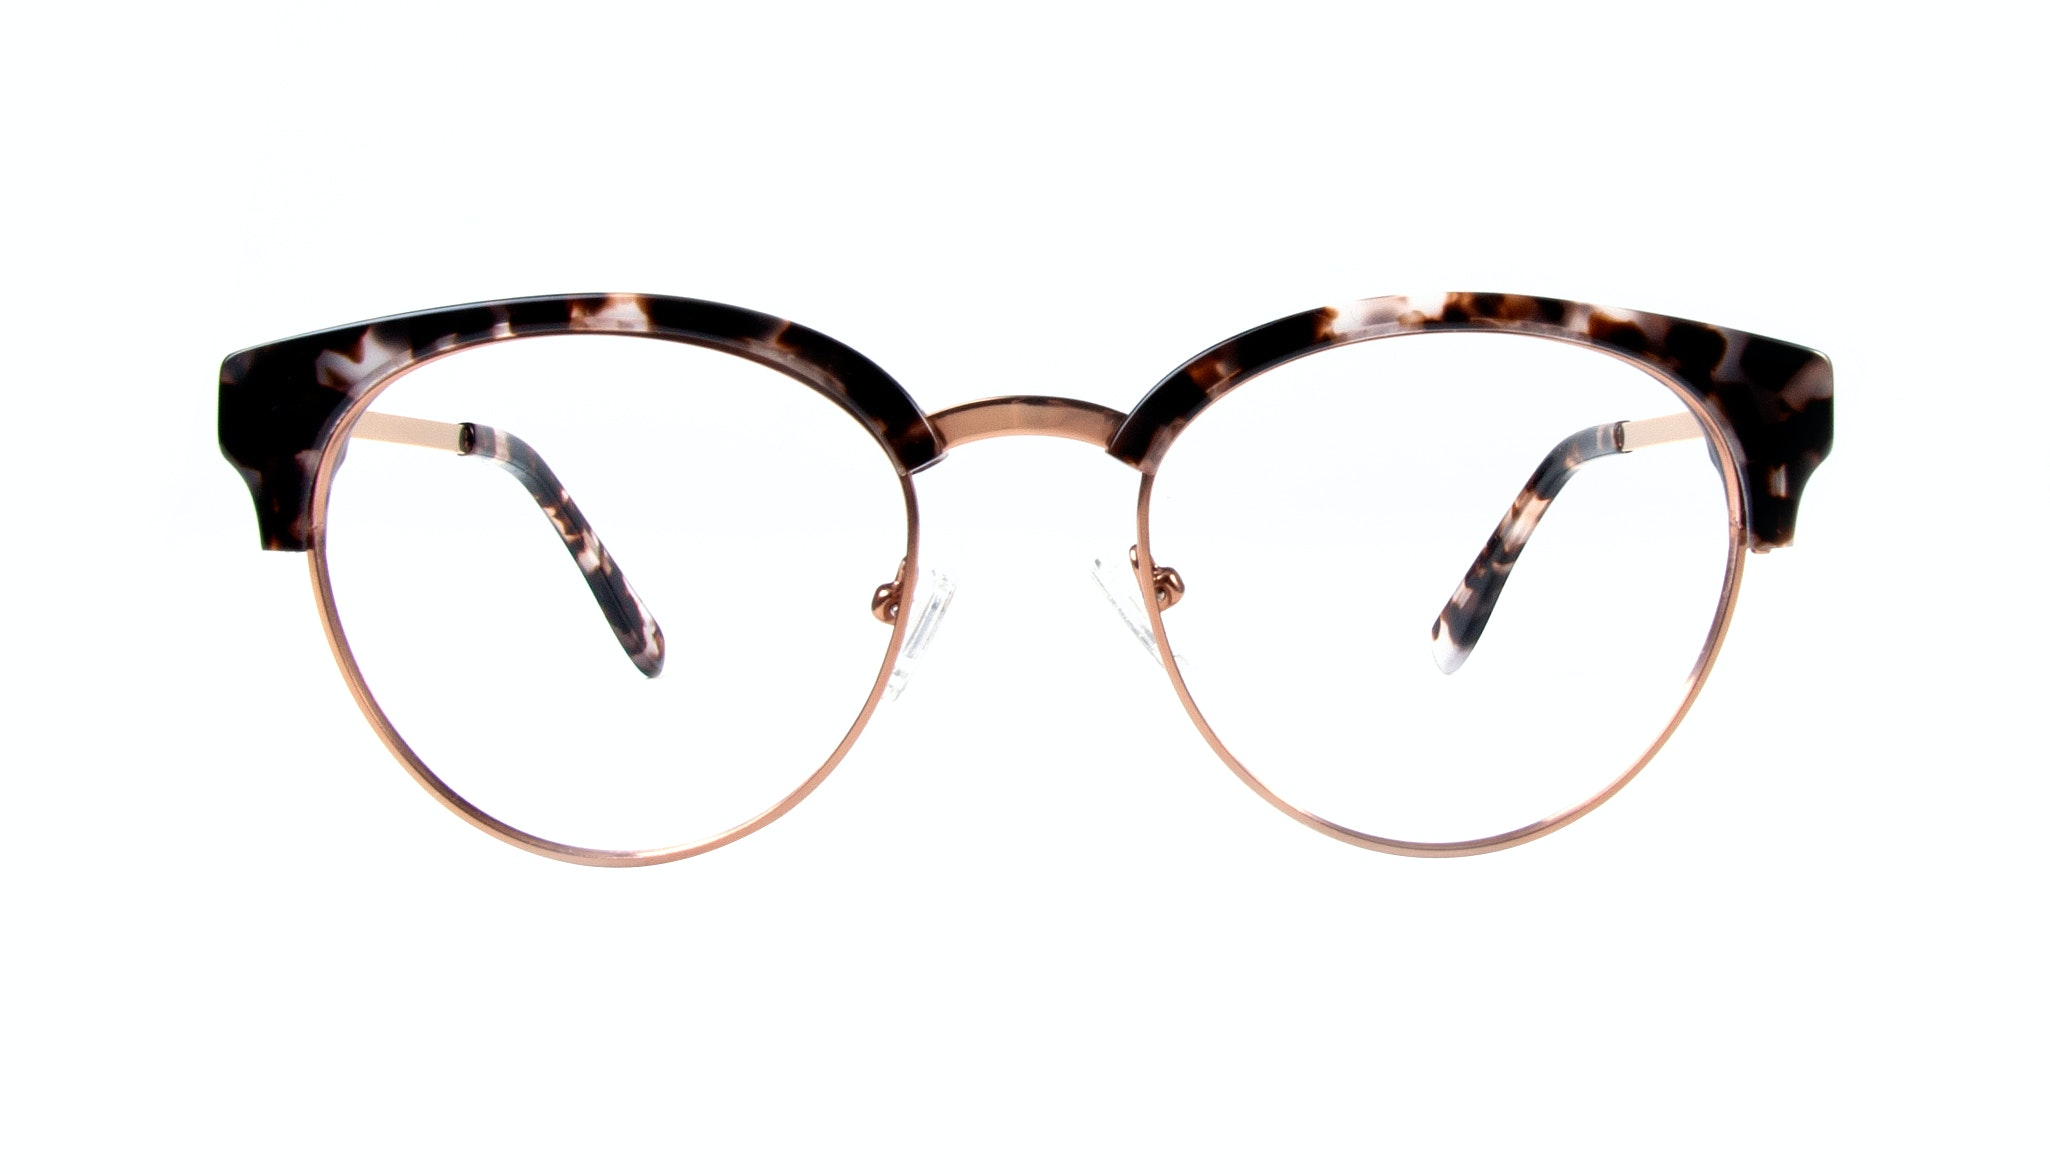 Affordable Fashion Glasses Round Eyeglasses Women Allure Mocha Tortoise